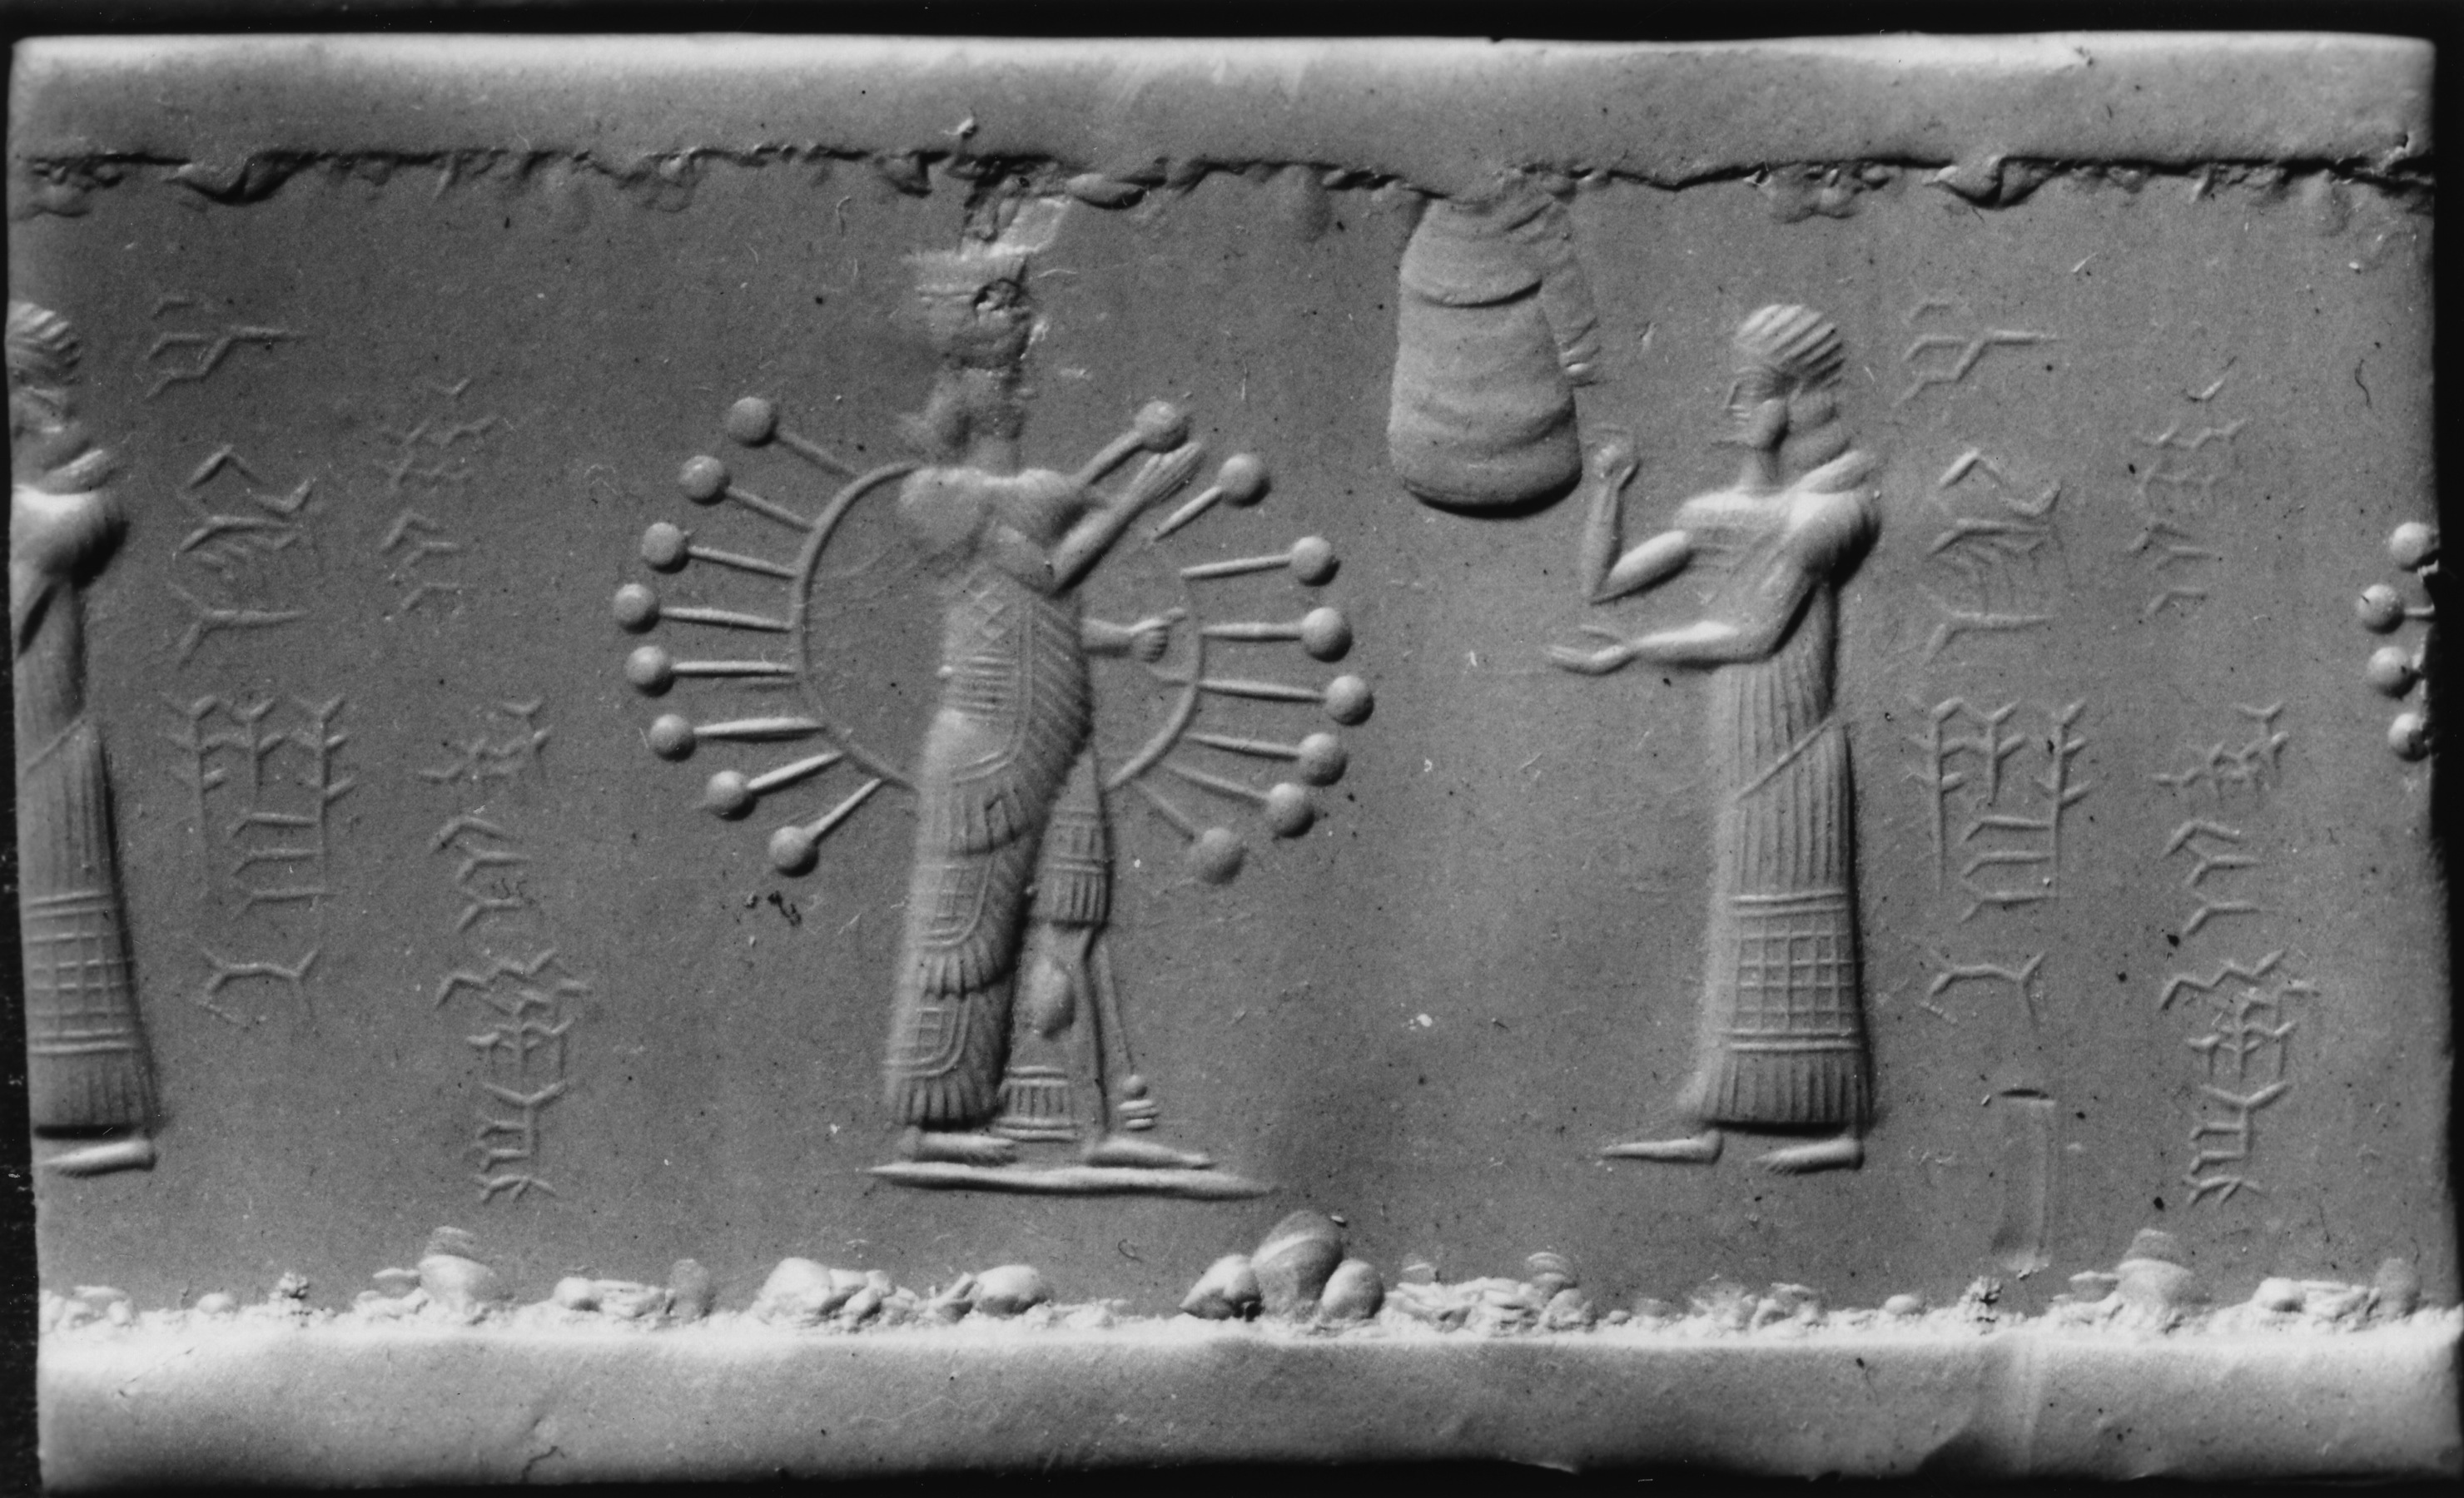 31 - Inanna with all her majesty, & her cautioning grandaunt Ninhursag